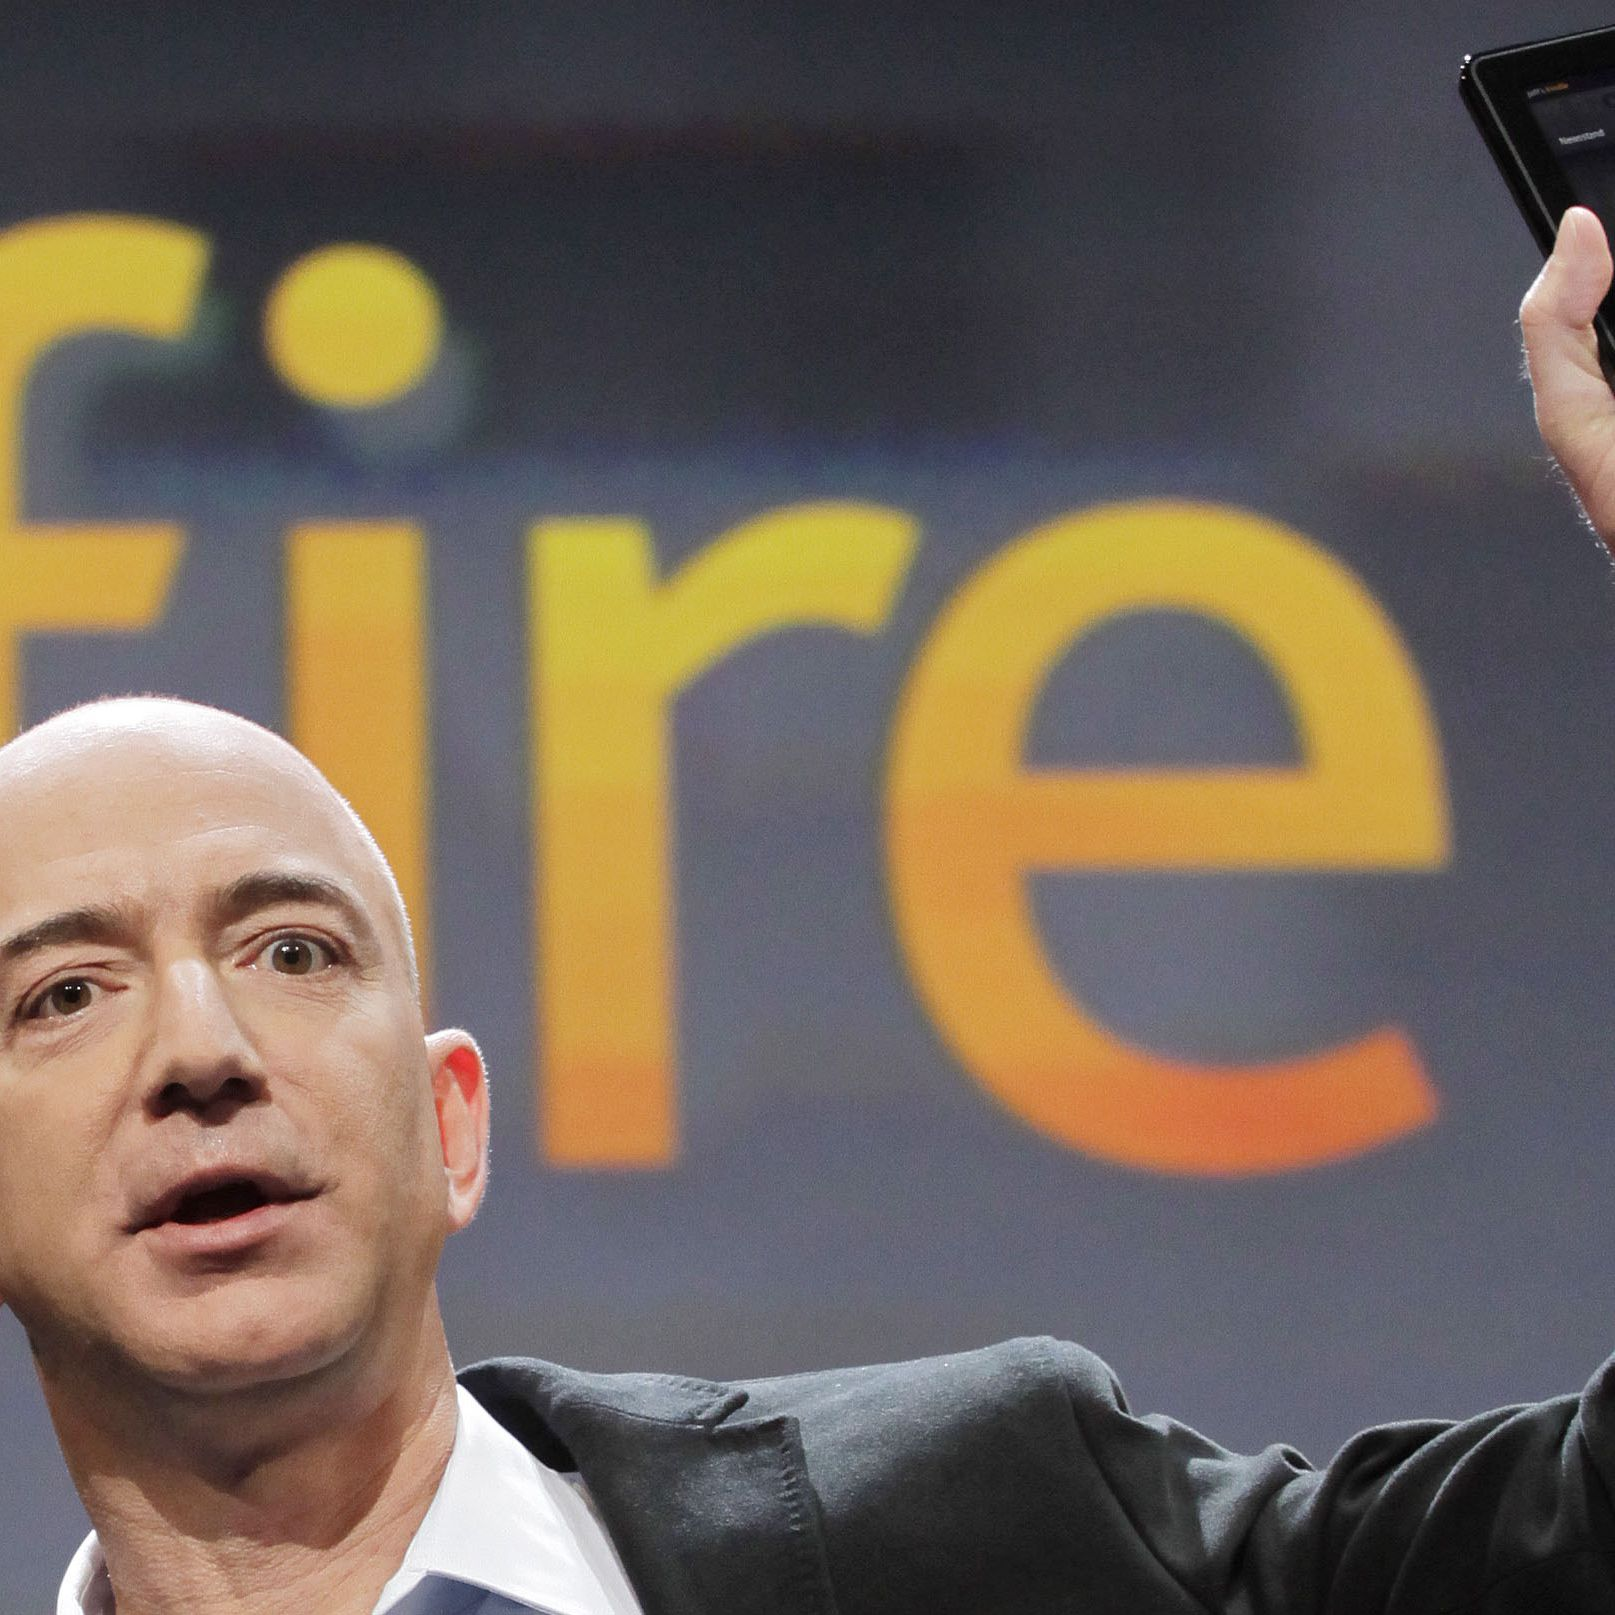 How Jeff Bezos Became the World's Richest Man